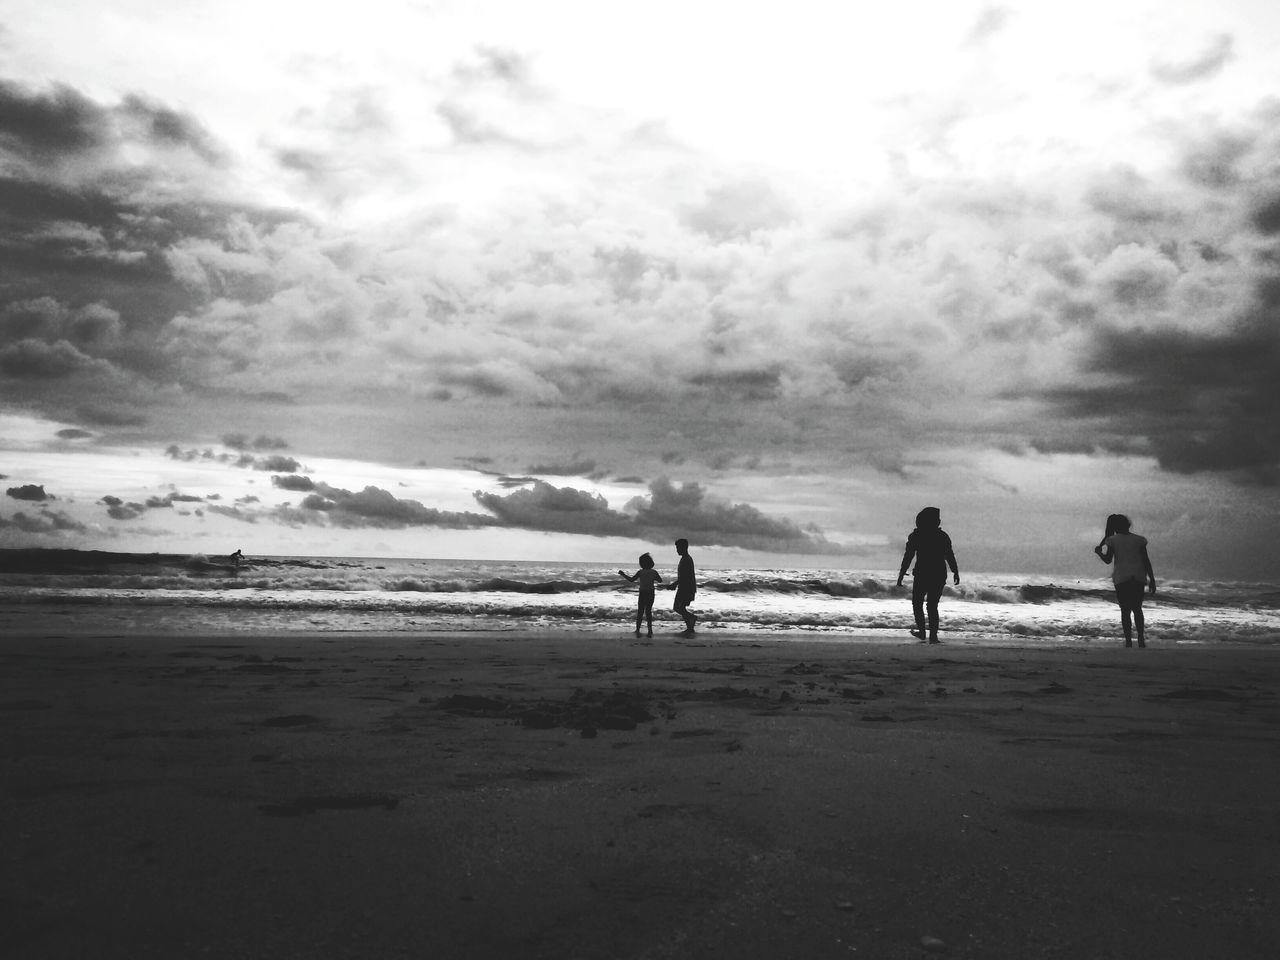 beach, sea, cloud - sky, sand, sky, nature, water, beauty in nature, horizon over water, vacations, scenics, leisure activity, silhouette, real people, day, outdoors, men, wave, full length, friendship, people